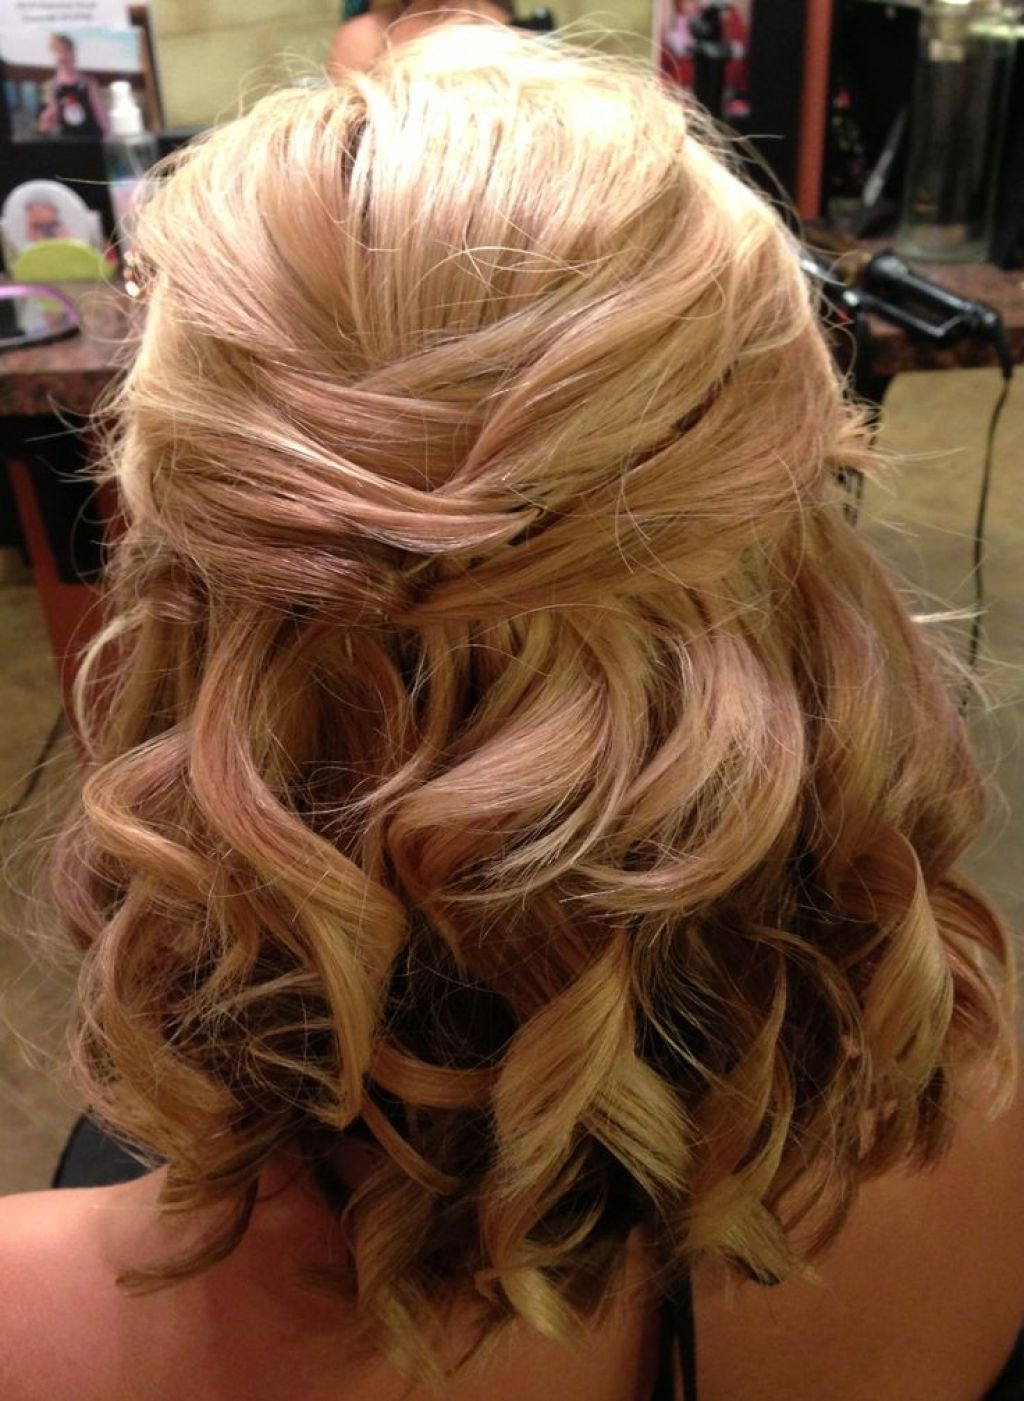 Fashionable Half Up Medium Length Wedding Hairstyles For √ 24+ Wonderful Medium Length Wedding Hairstyles: 65 Half Up Half (View 3 of 15)